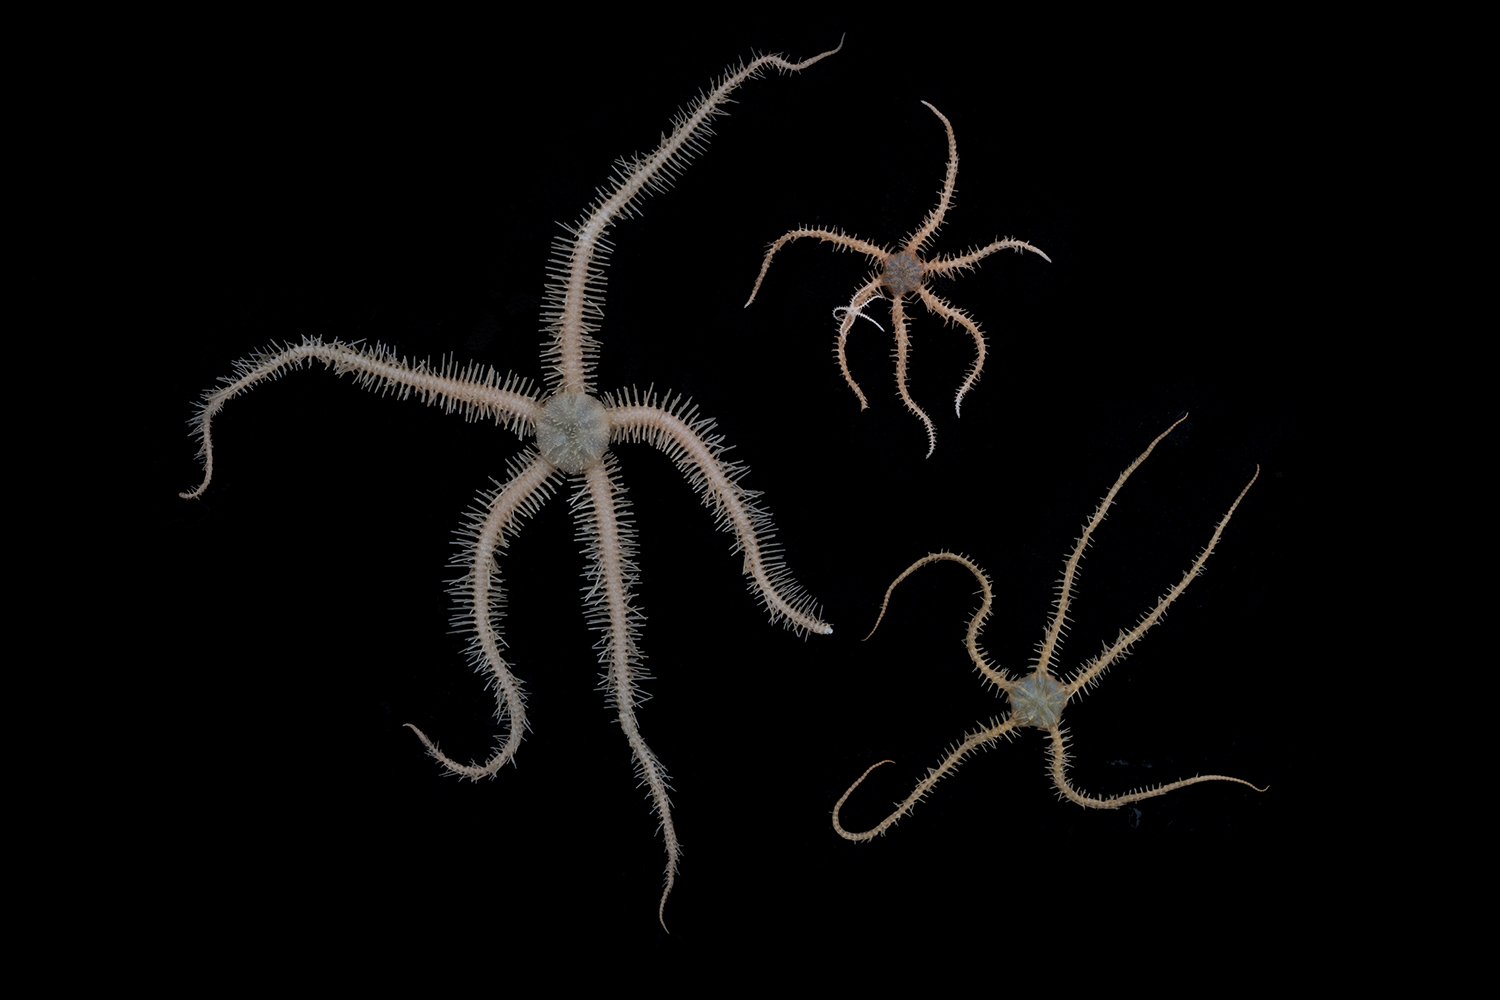 Ophiuroid brittle stars can be found in any type of Antarctic seabed habitat. These were collected off Lecointe Island (Gerlache Strait, Antarctic Peninsula) at around 560 meters depth.